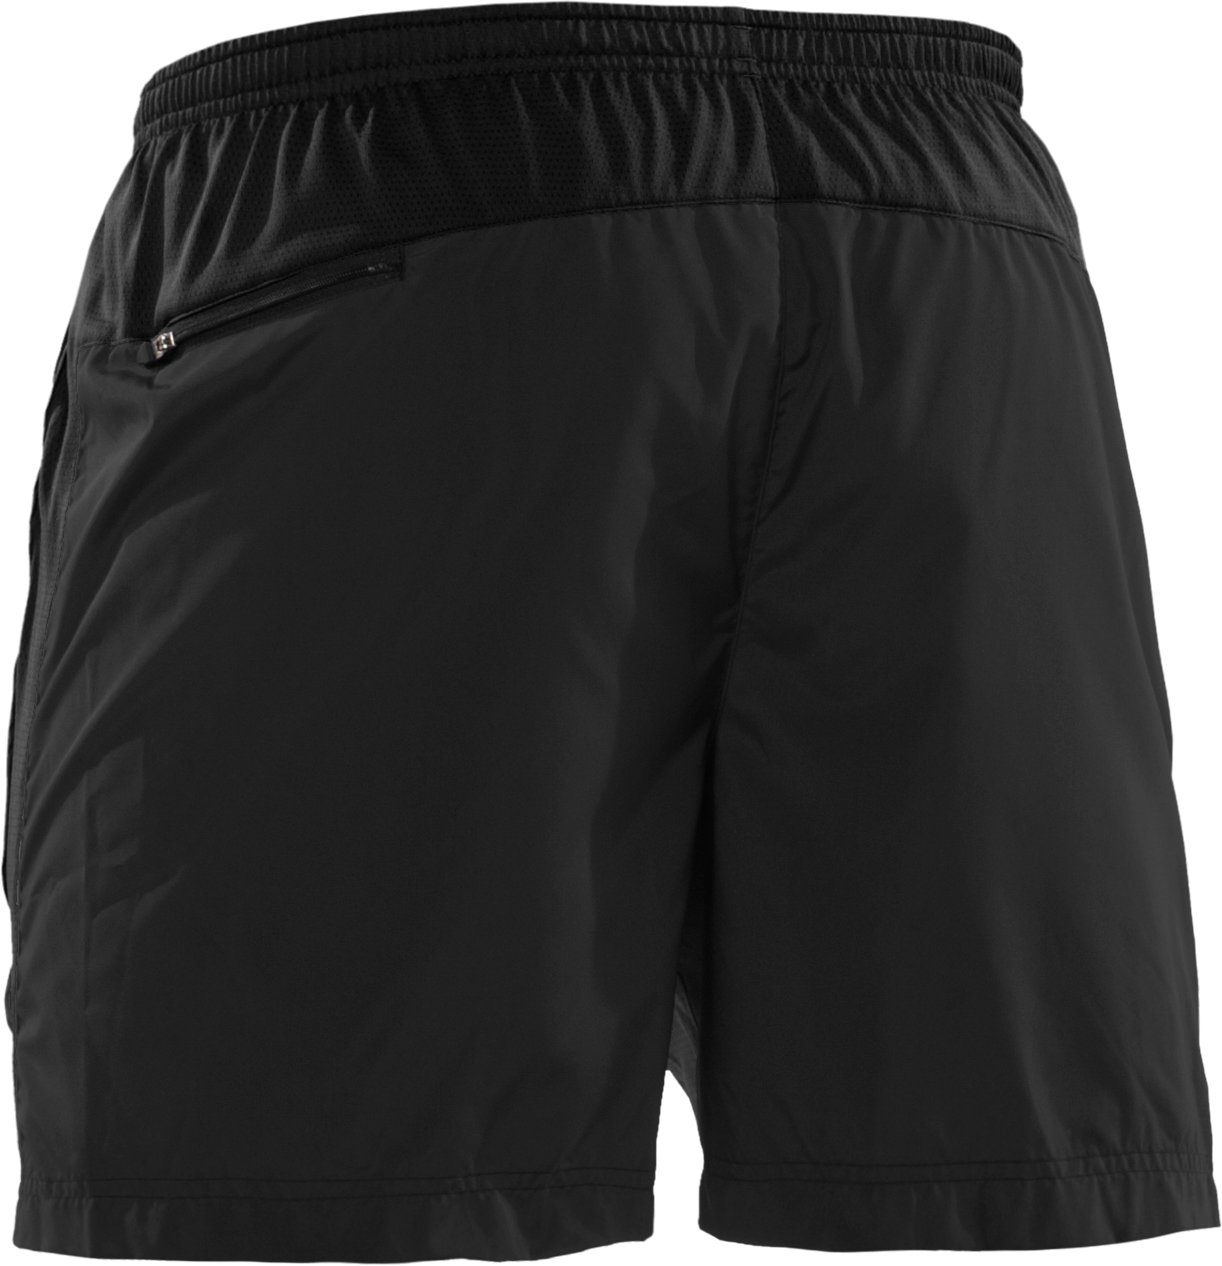 "Men's Draft UA Catalyst 5"" Shorts, Black"